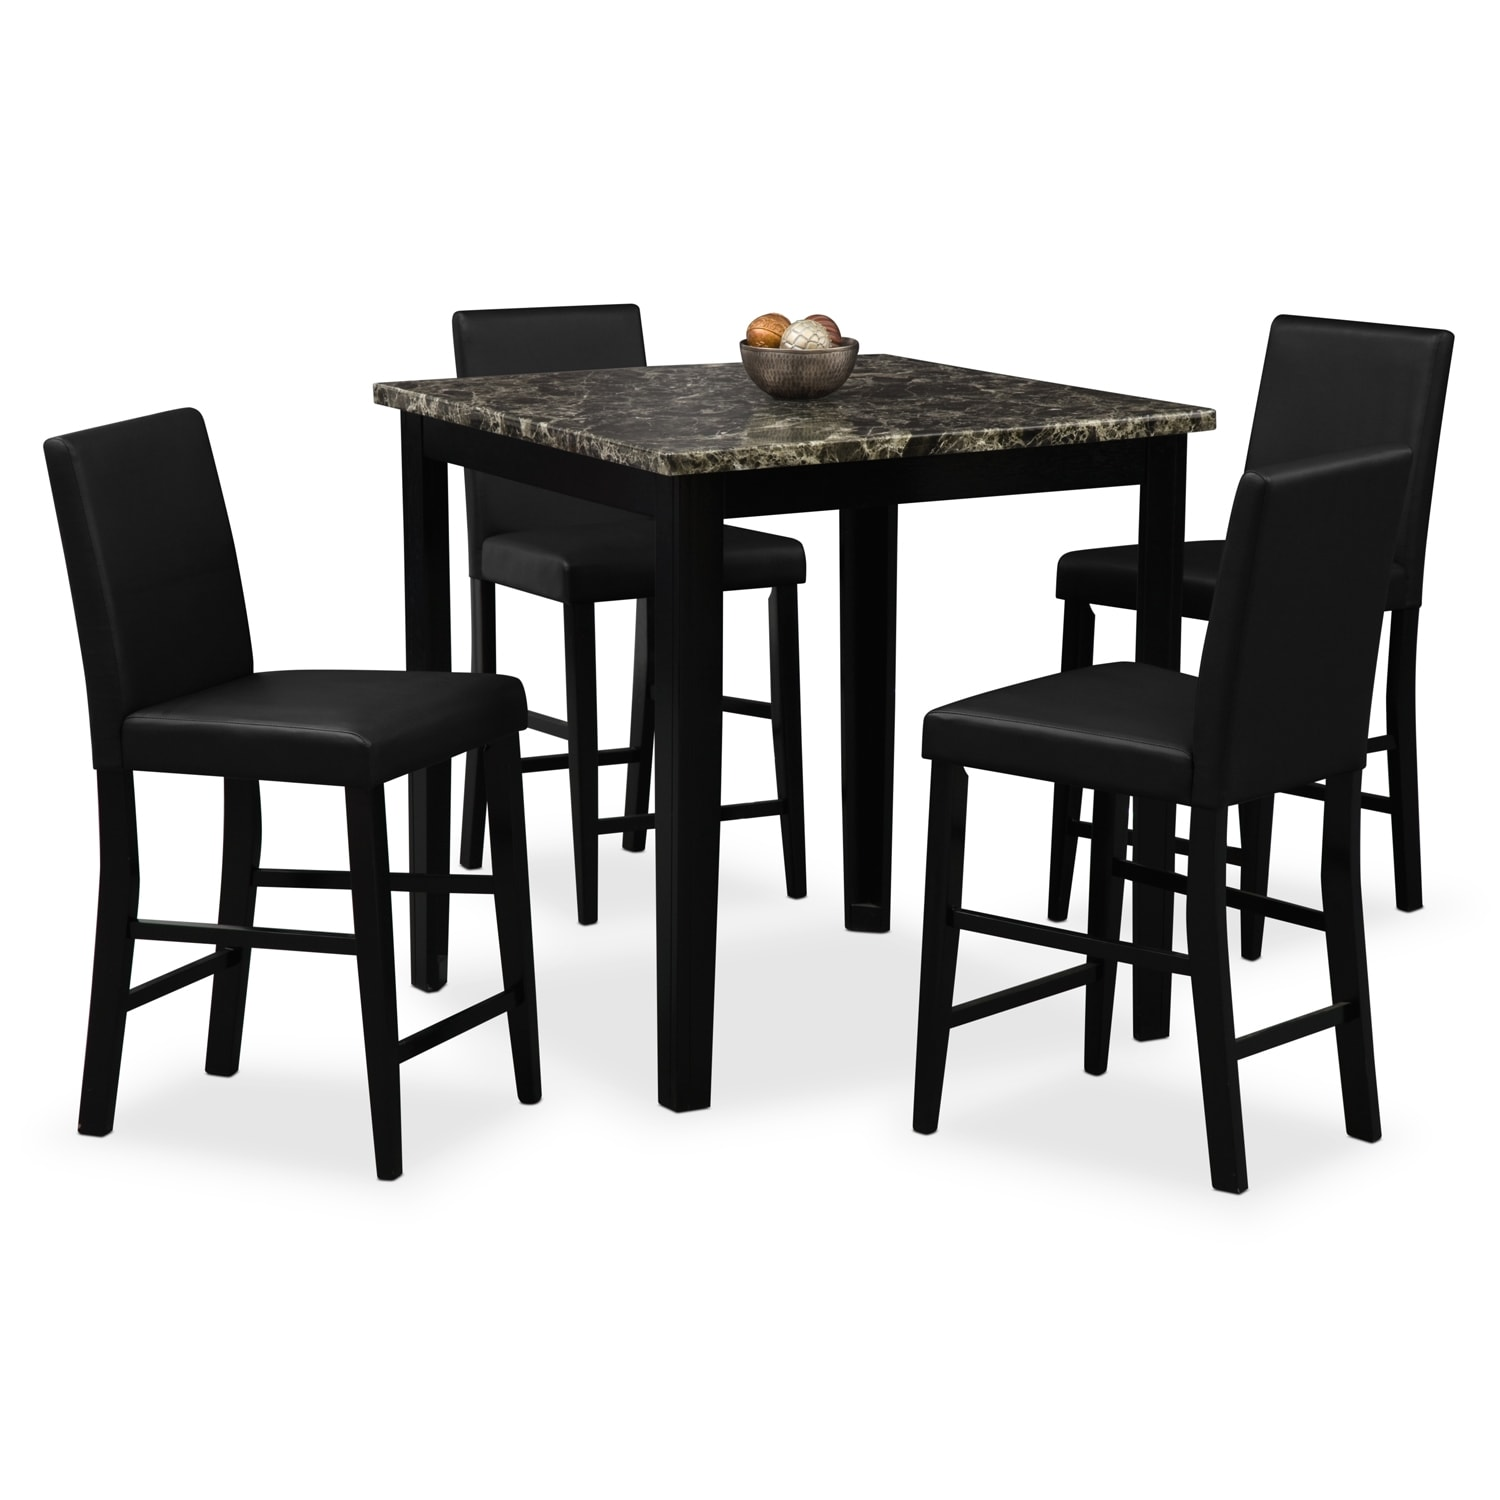 Dining Table Sets Black And White Dining Table 4 Chairs: Shadow Counter-Height Dining Table And 4 Dining Chairs